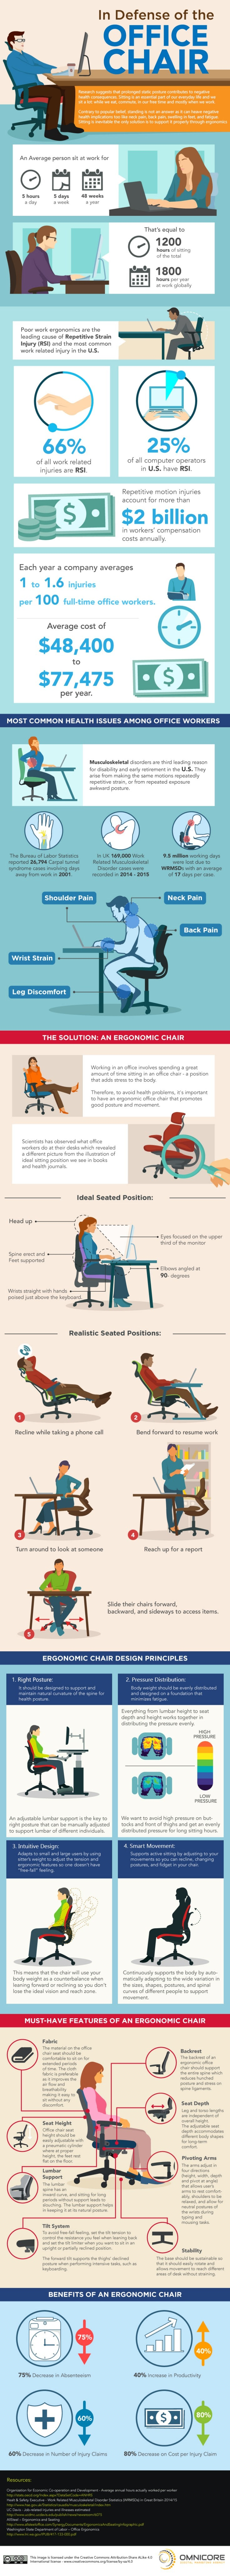 Why You Need An Ergonomic Chair For Your Office - Infographic